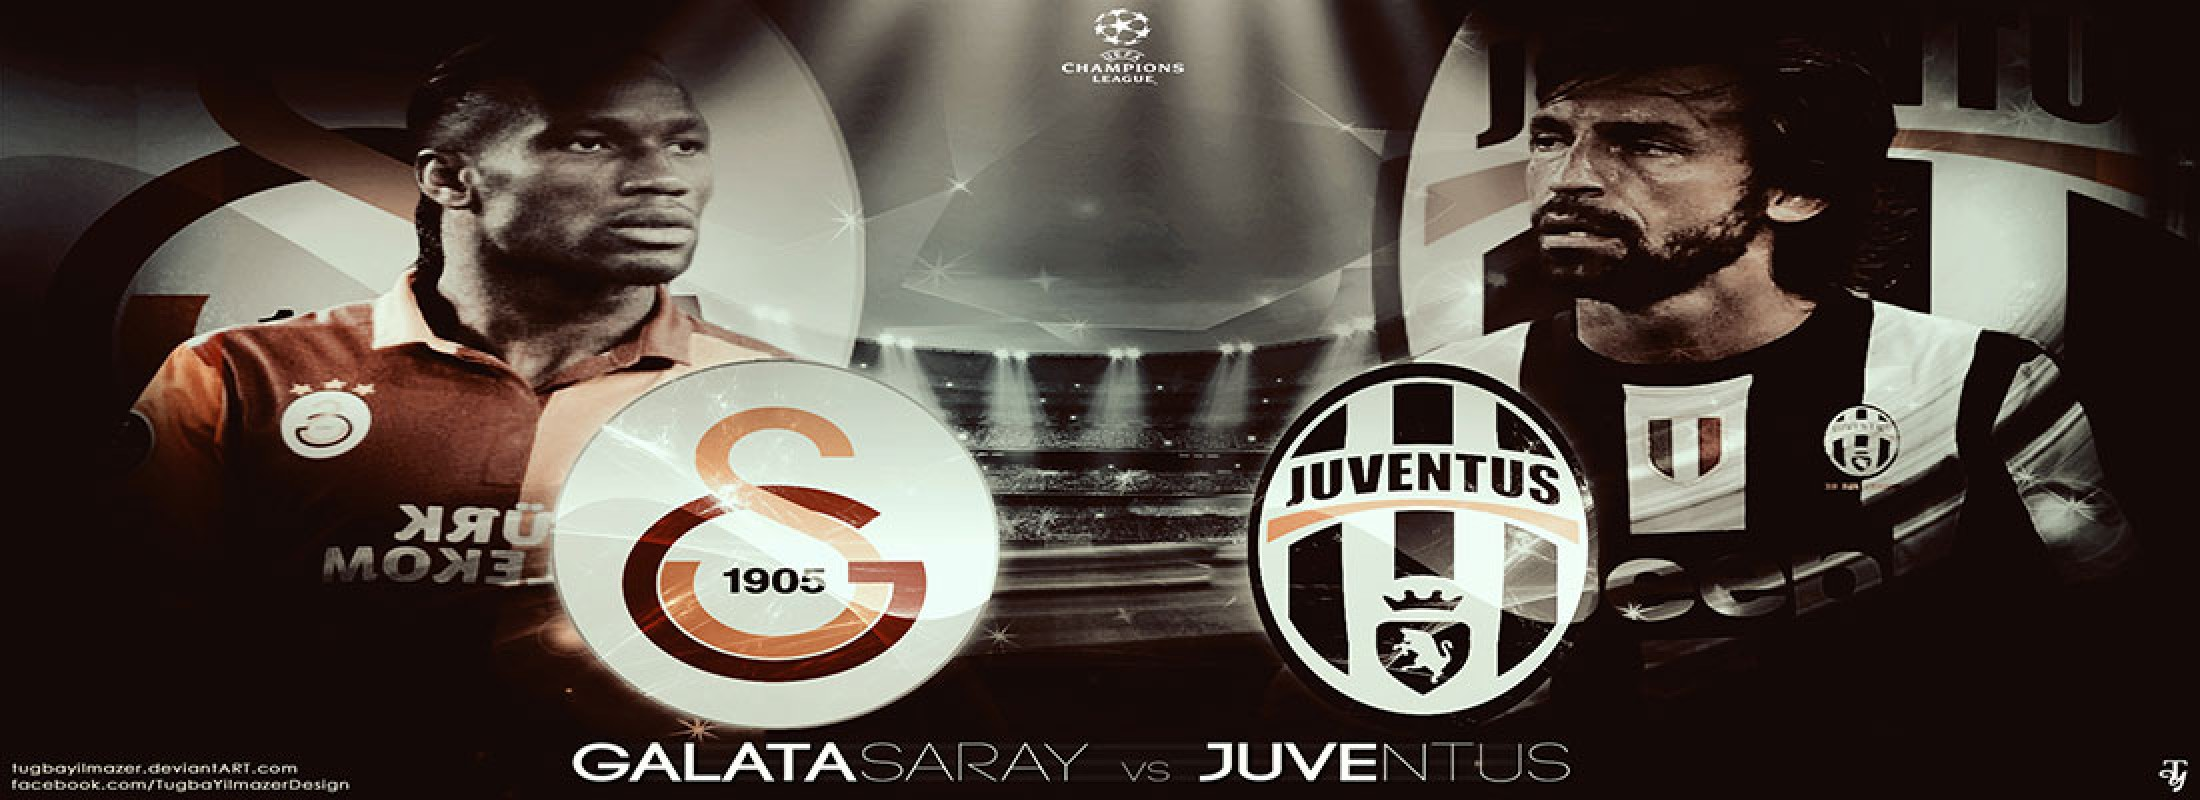 galatasaray_juventus_champions_league_wallpaper